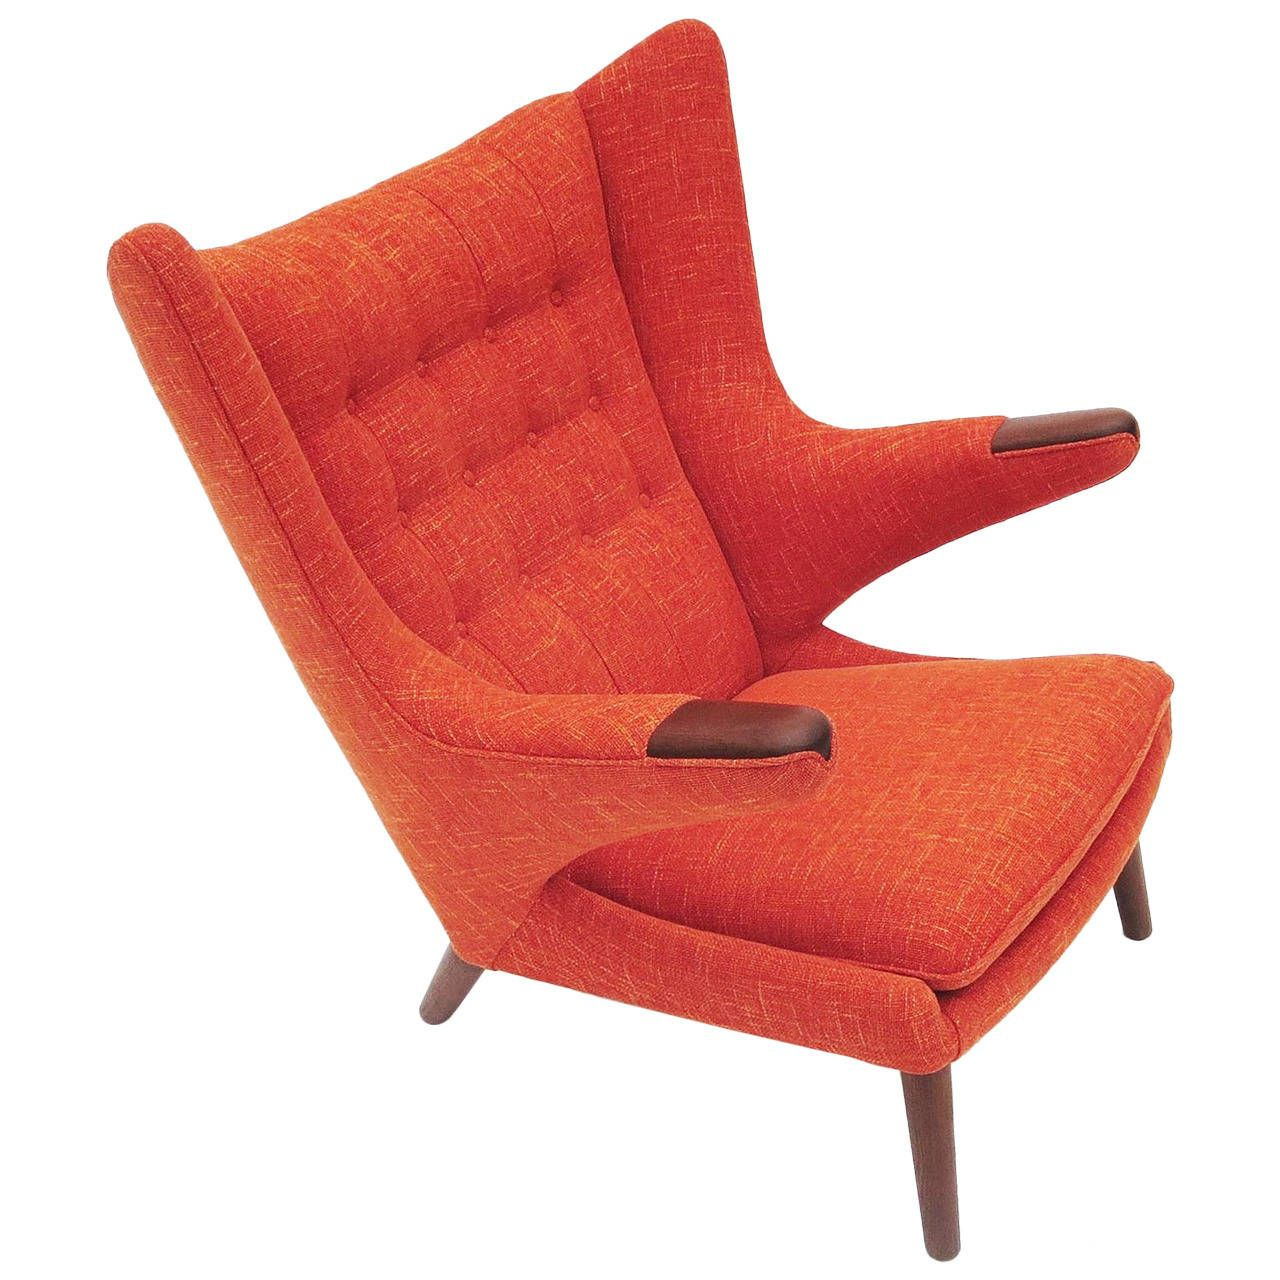 Hans Wegner Papa Bear Chair for A. P. Stolen, 1951 | See more antique and modern Armchairs at http://www.1stdibs.com/furniture/seating/armchairs